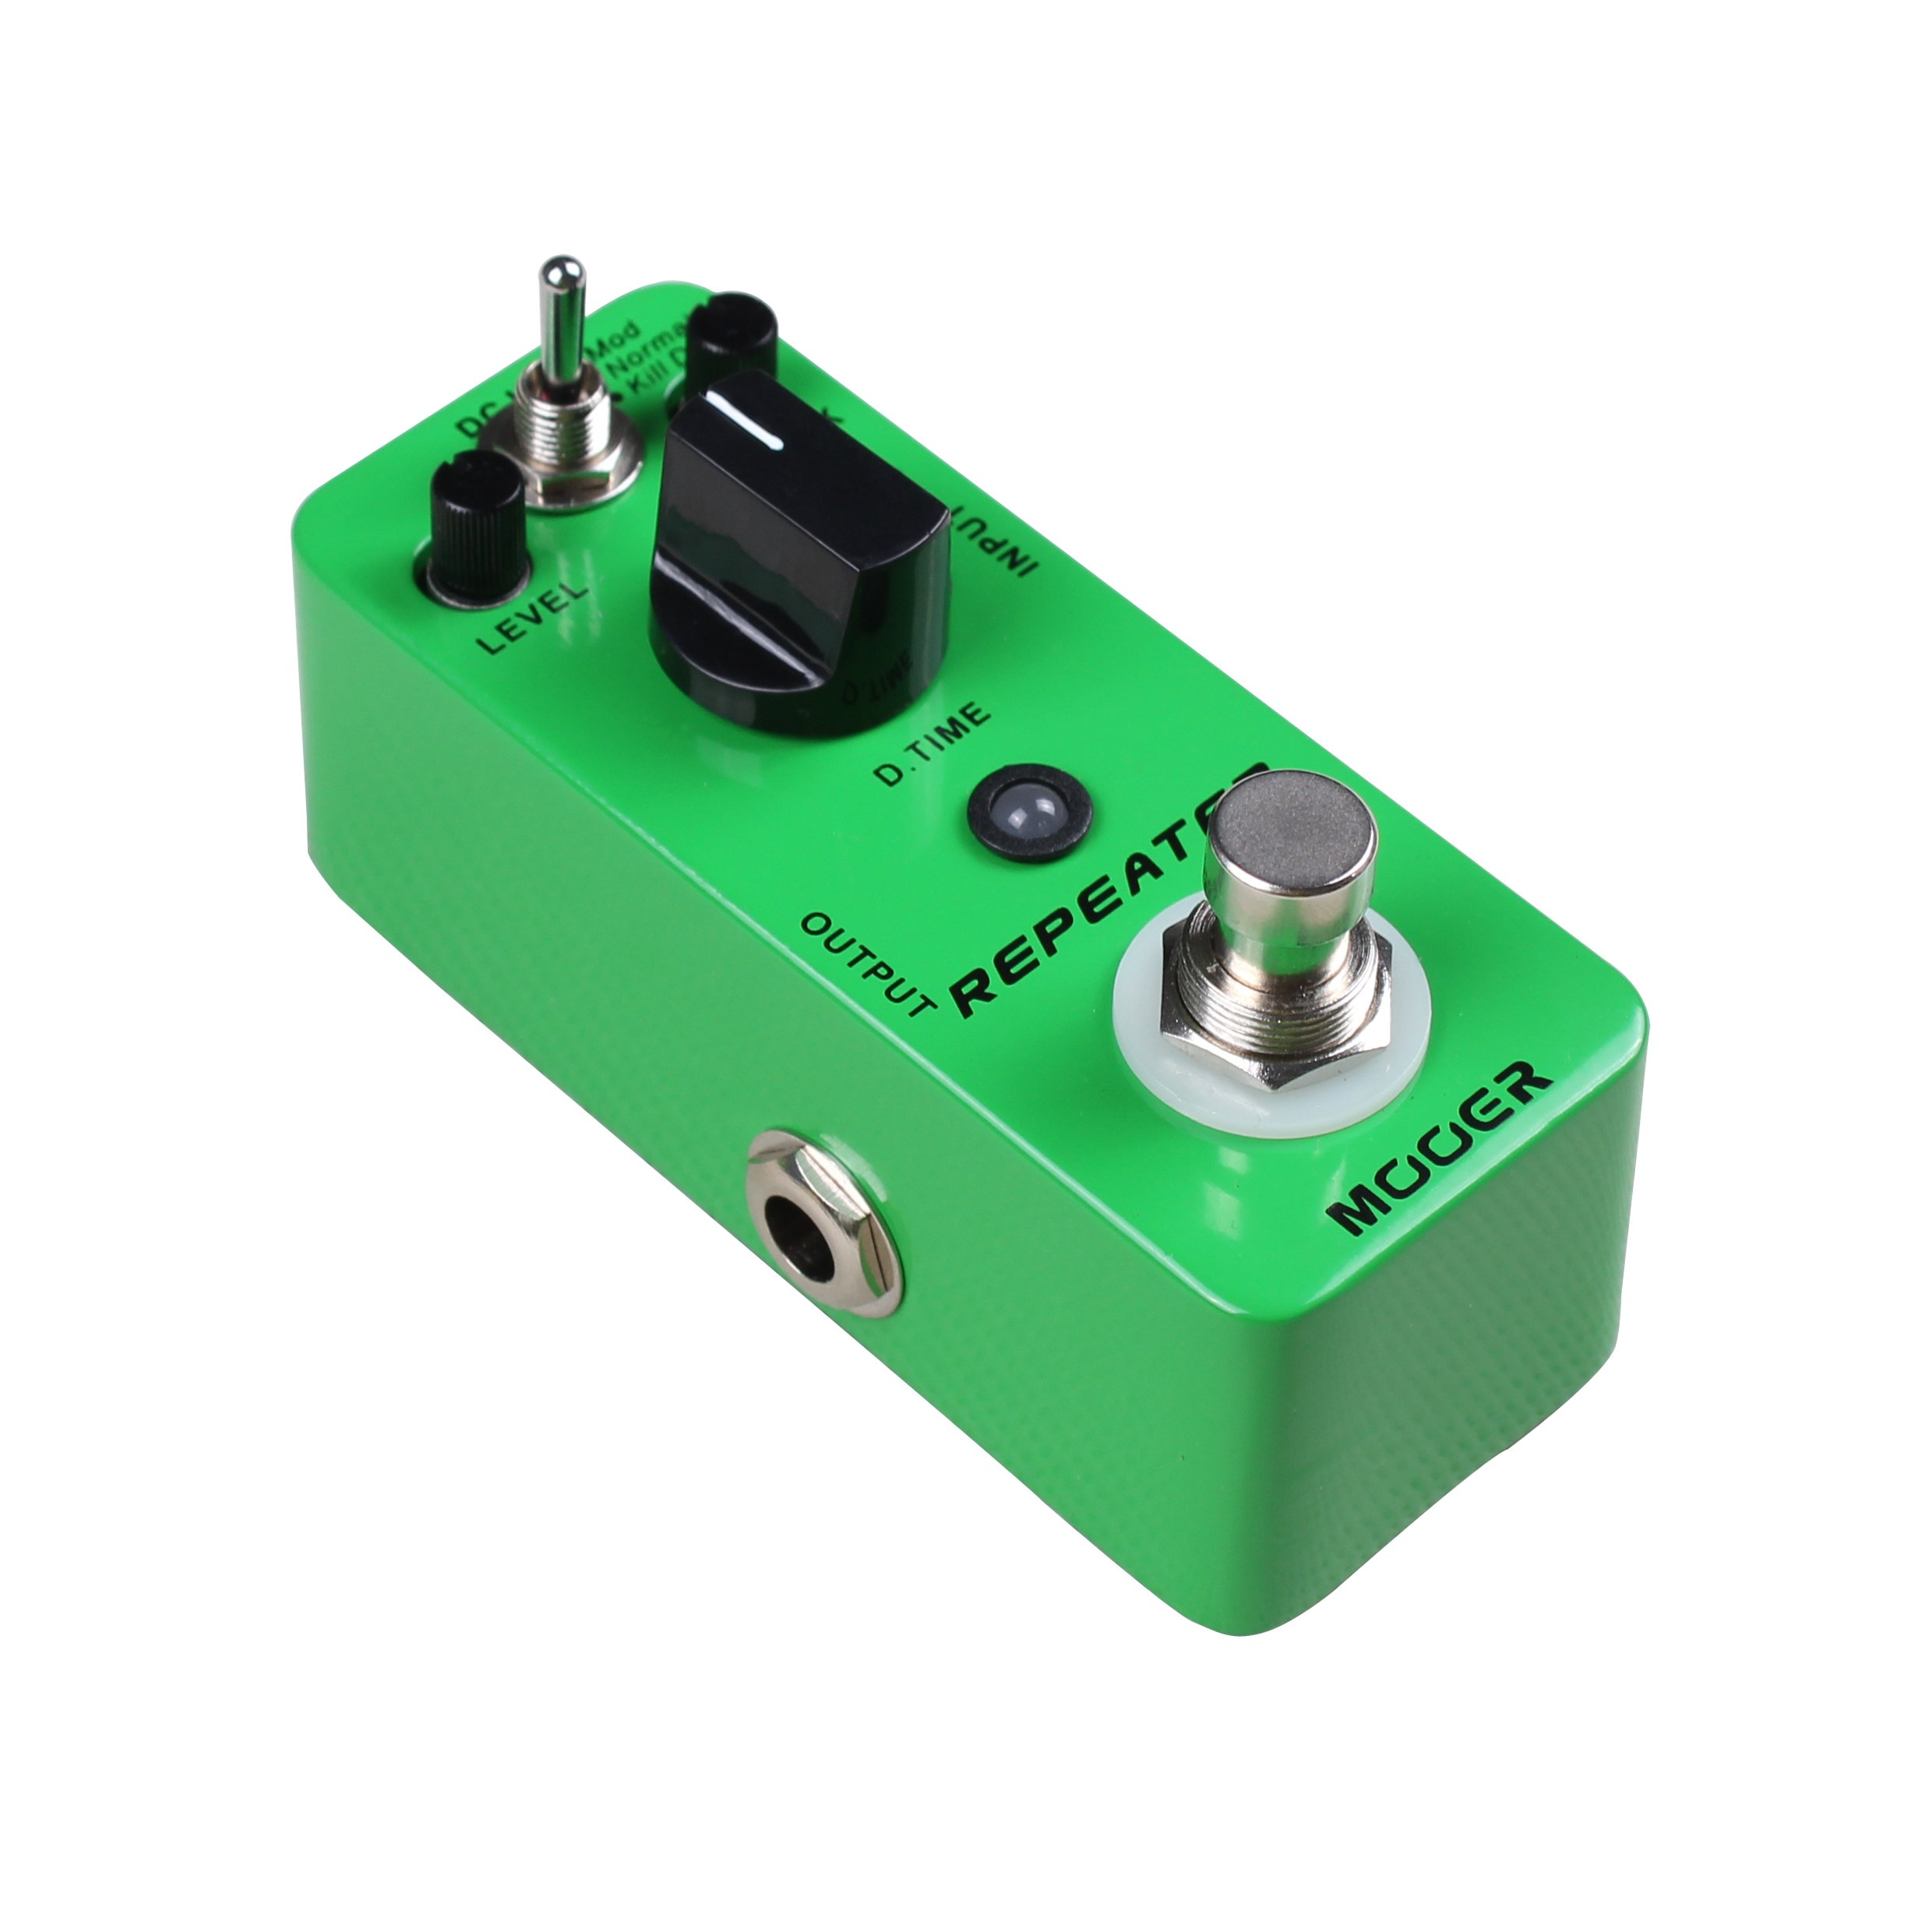 Mooer MDL1 Repeater Guitar Delay Effects Pedal by MOOER